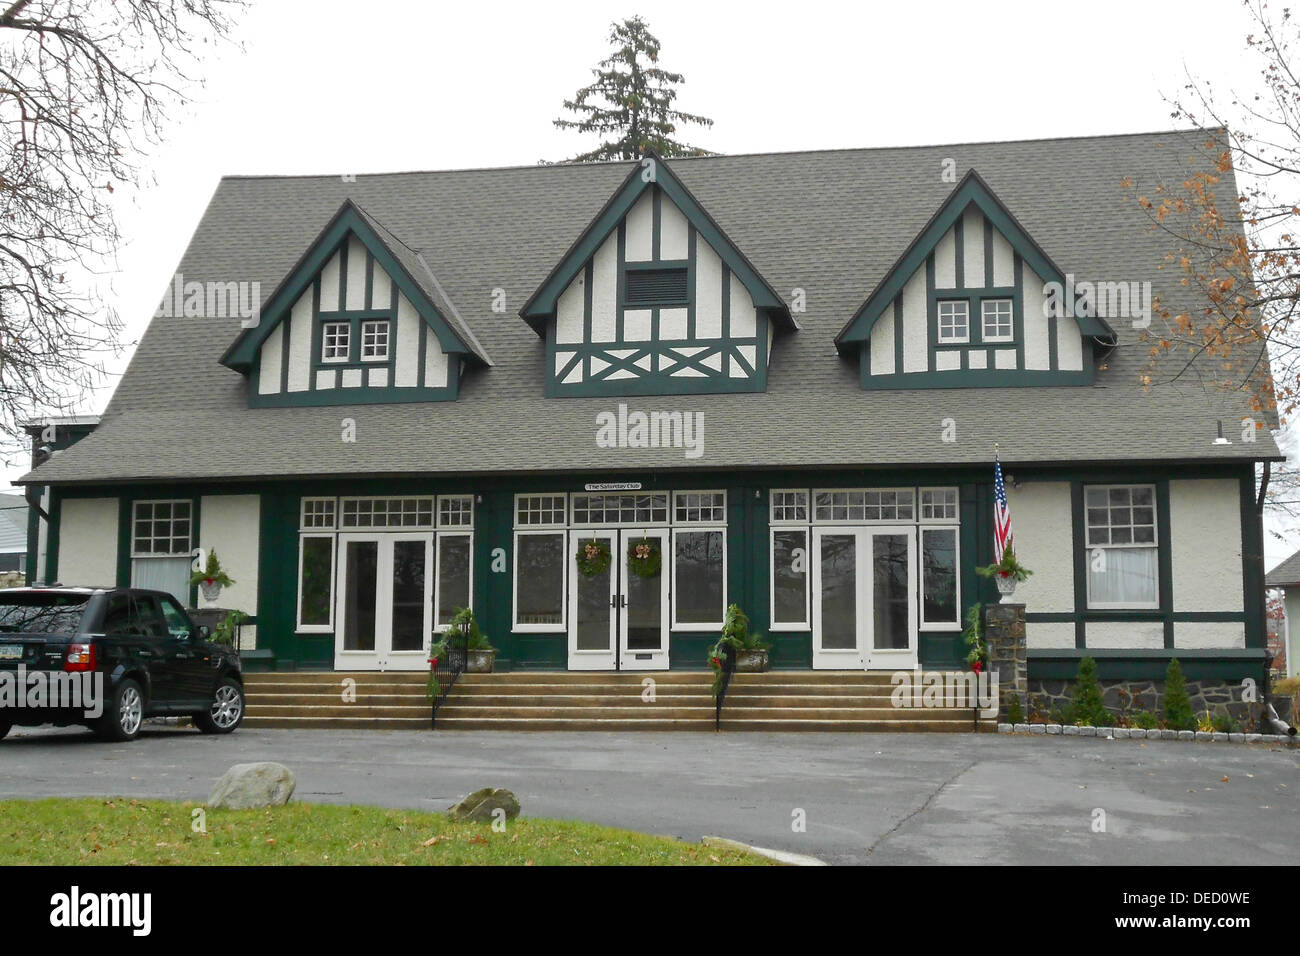 Saturday Club, on the NRHP since March 14, 1978 at 117 West Wayne Avenue, Wayne, Pennsylvania. Also in the Downtown Wayne Historic District. - Stock Image